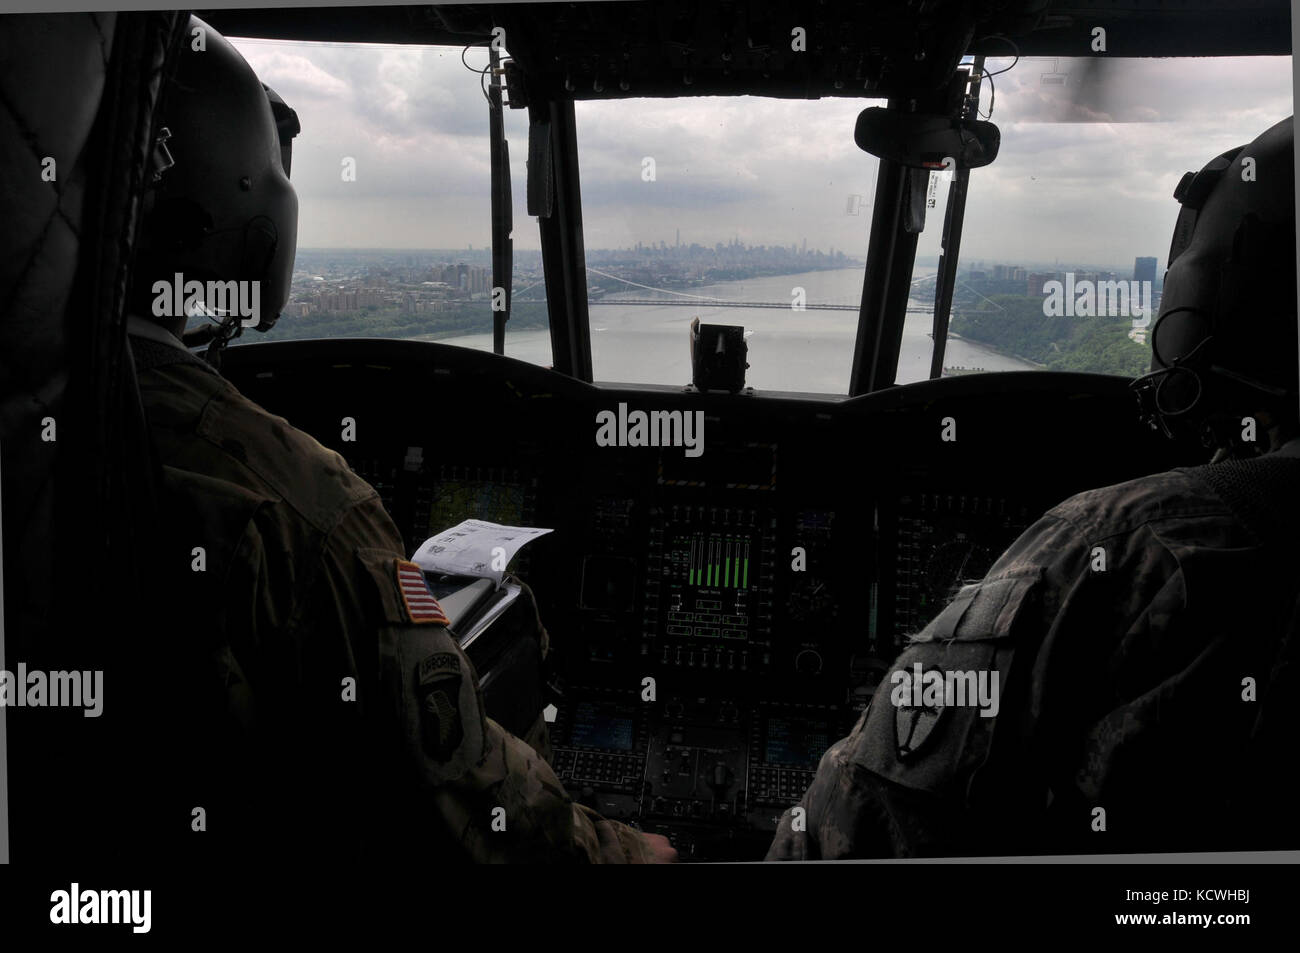 A South Carolina Army National Guard (SCARNG) CH-47F Chinook helicopter flies on the Hudson Rive, in proximity of Stock Photo